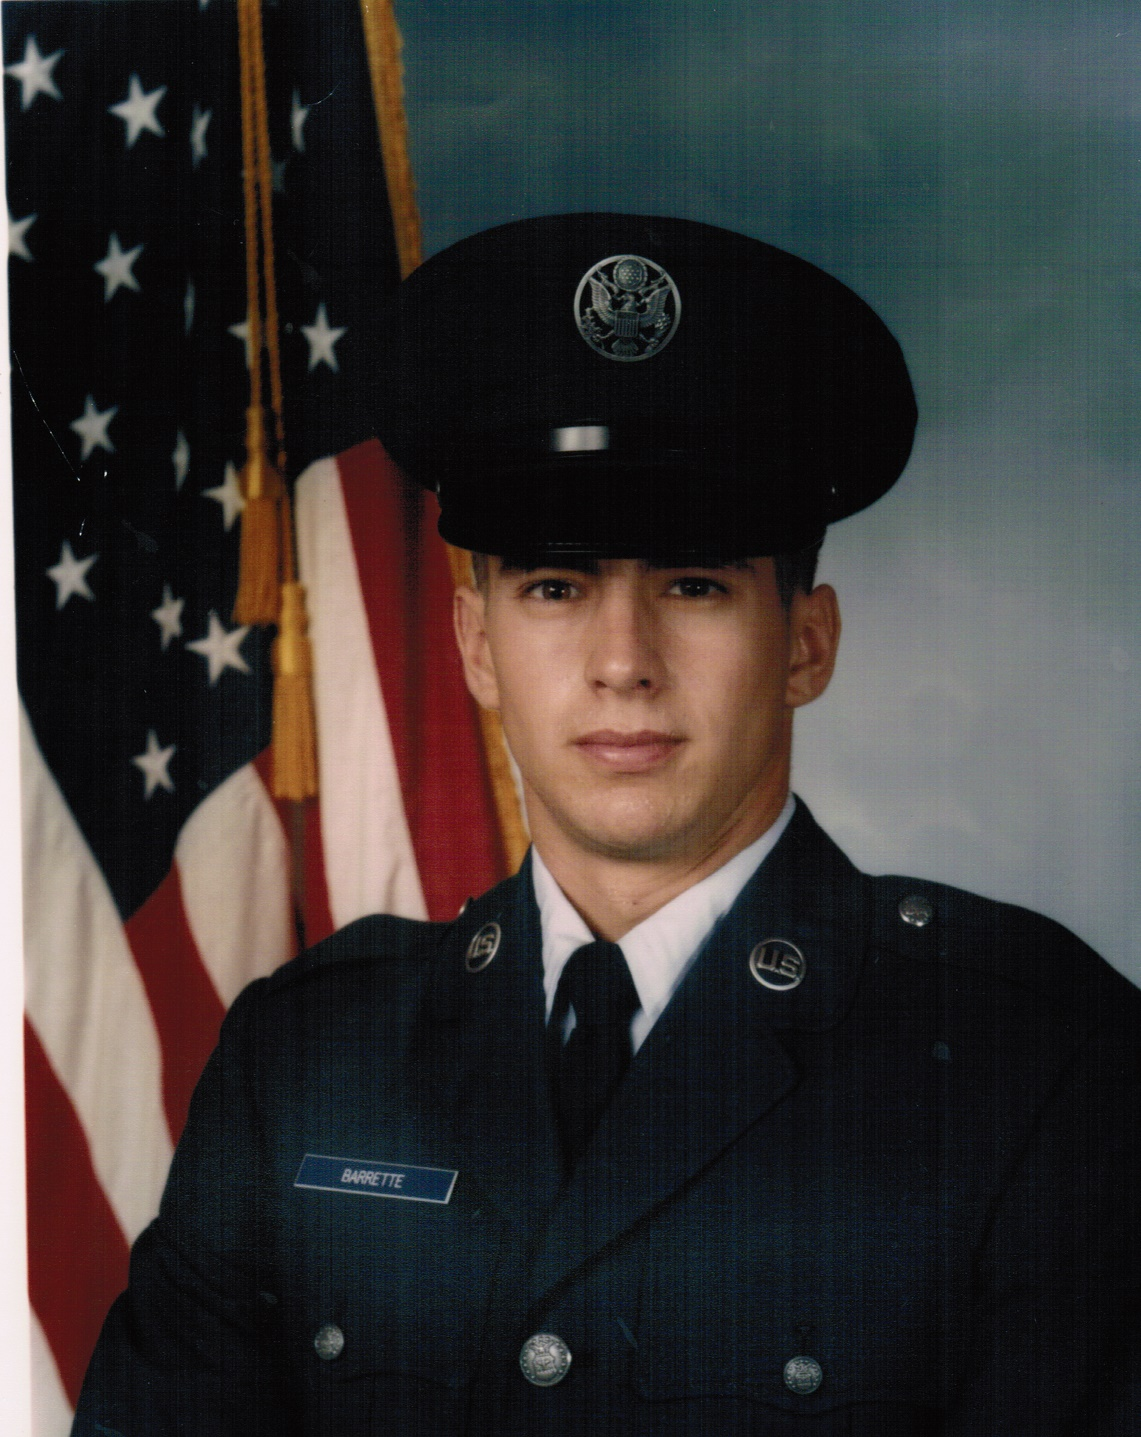 Tom Barrette USAF